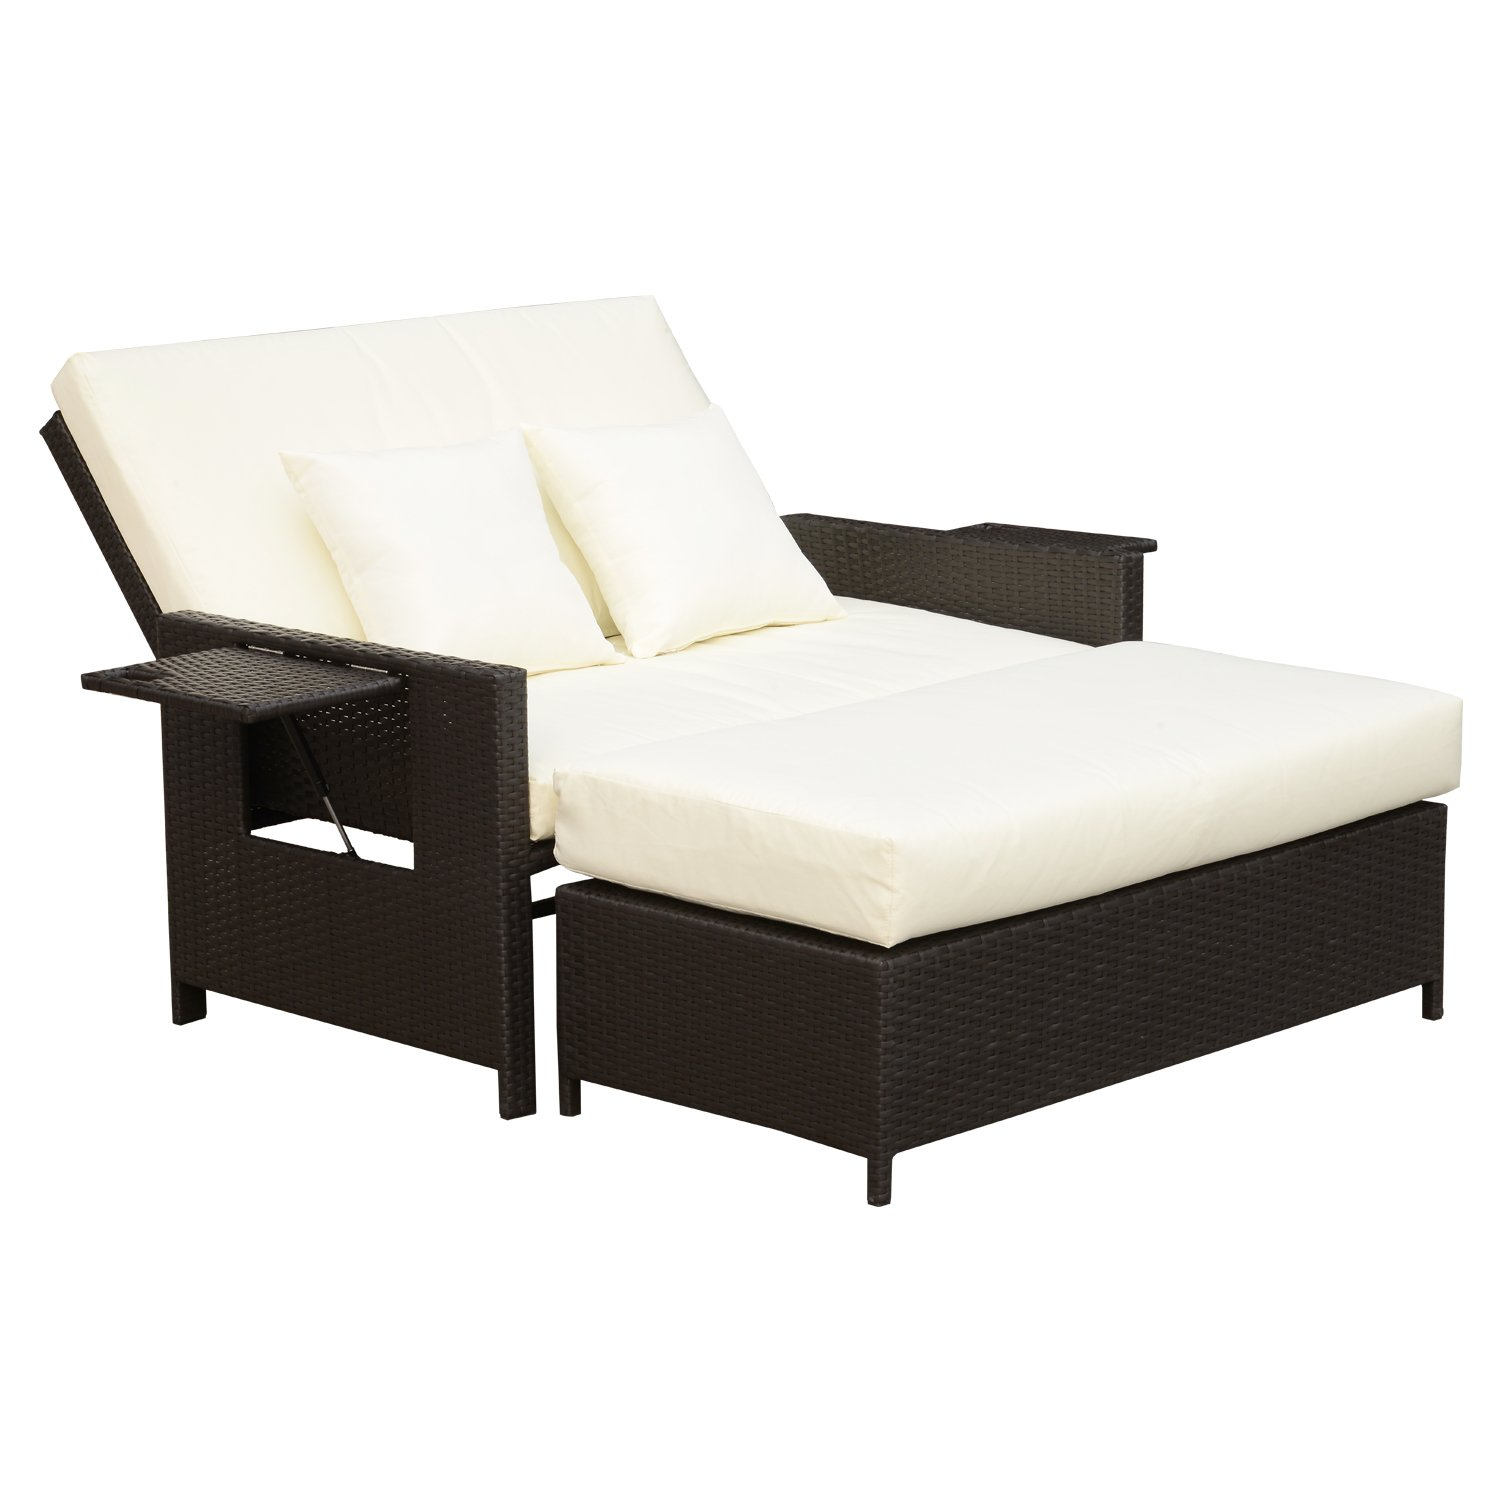 Outsunny 2 Piece Outdoor Rattan Wicker Cushioned Chaise Lounge and Ottoman Set